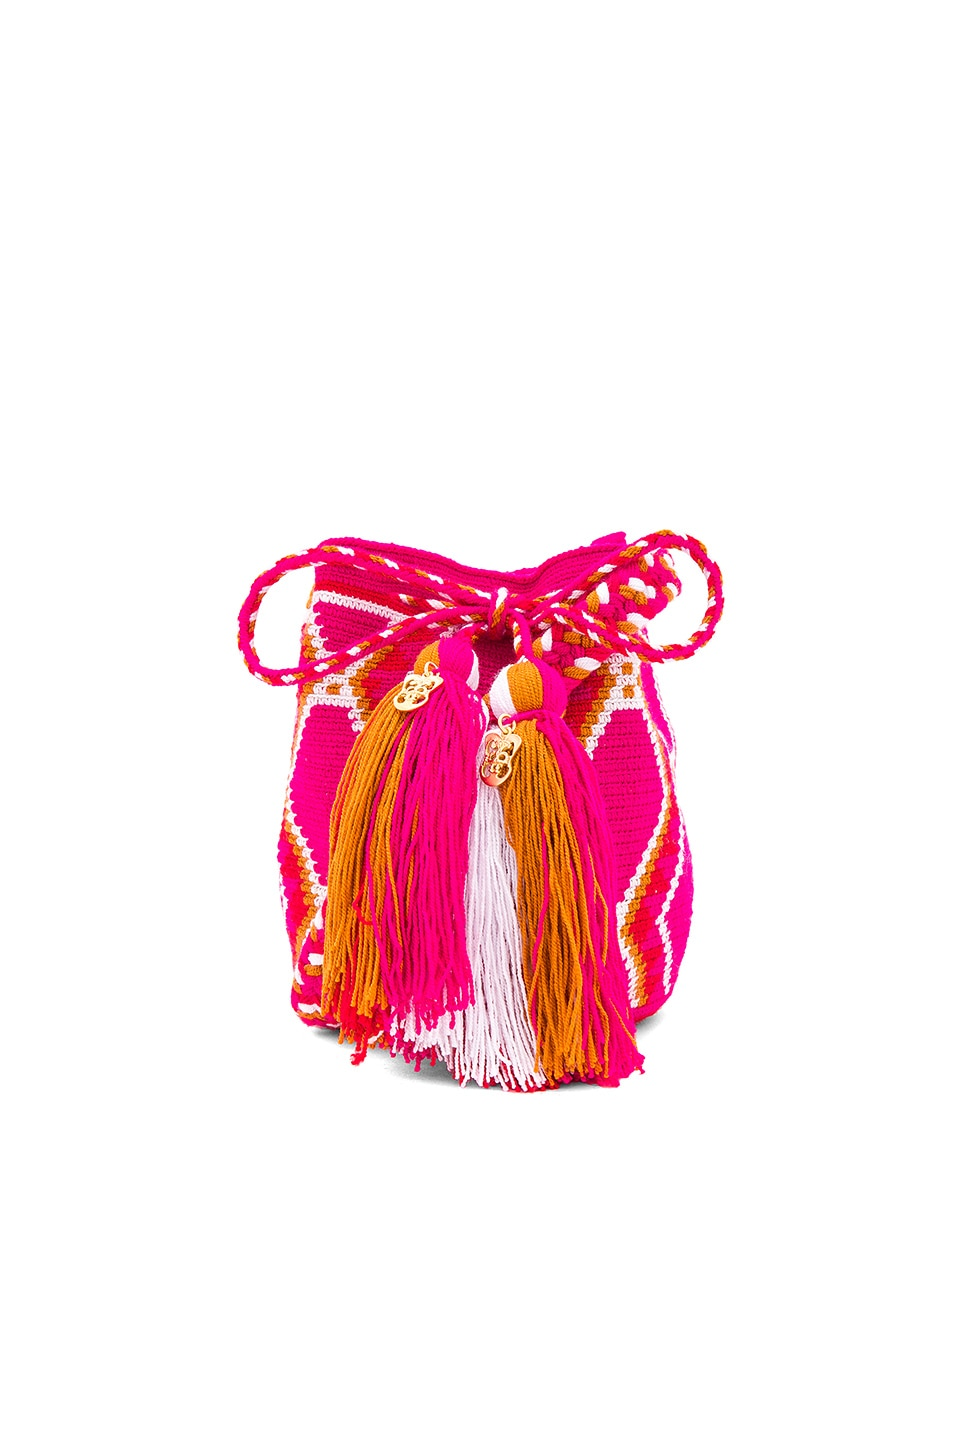 Mini Mochila Bucket Bag by The Way U